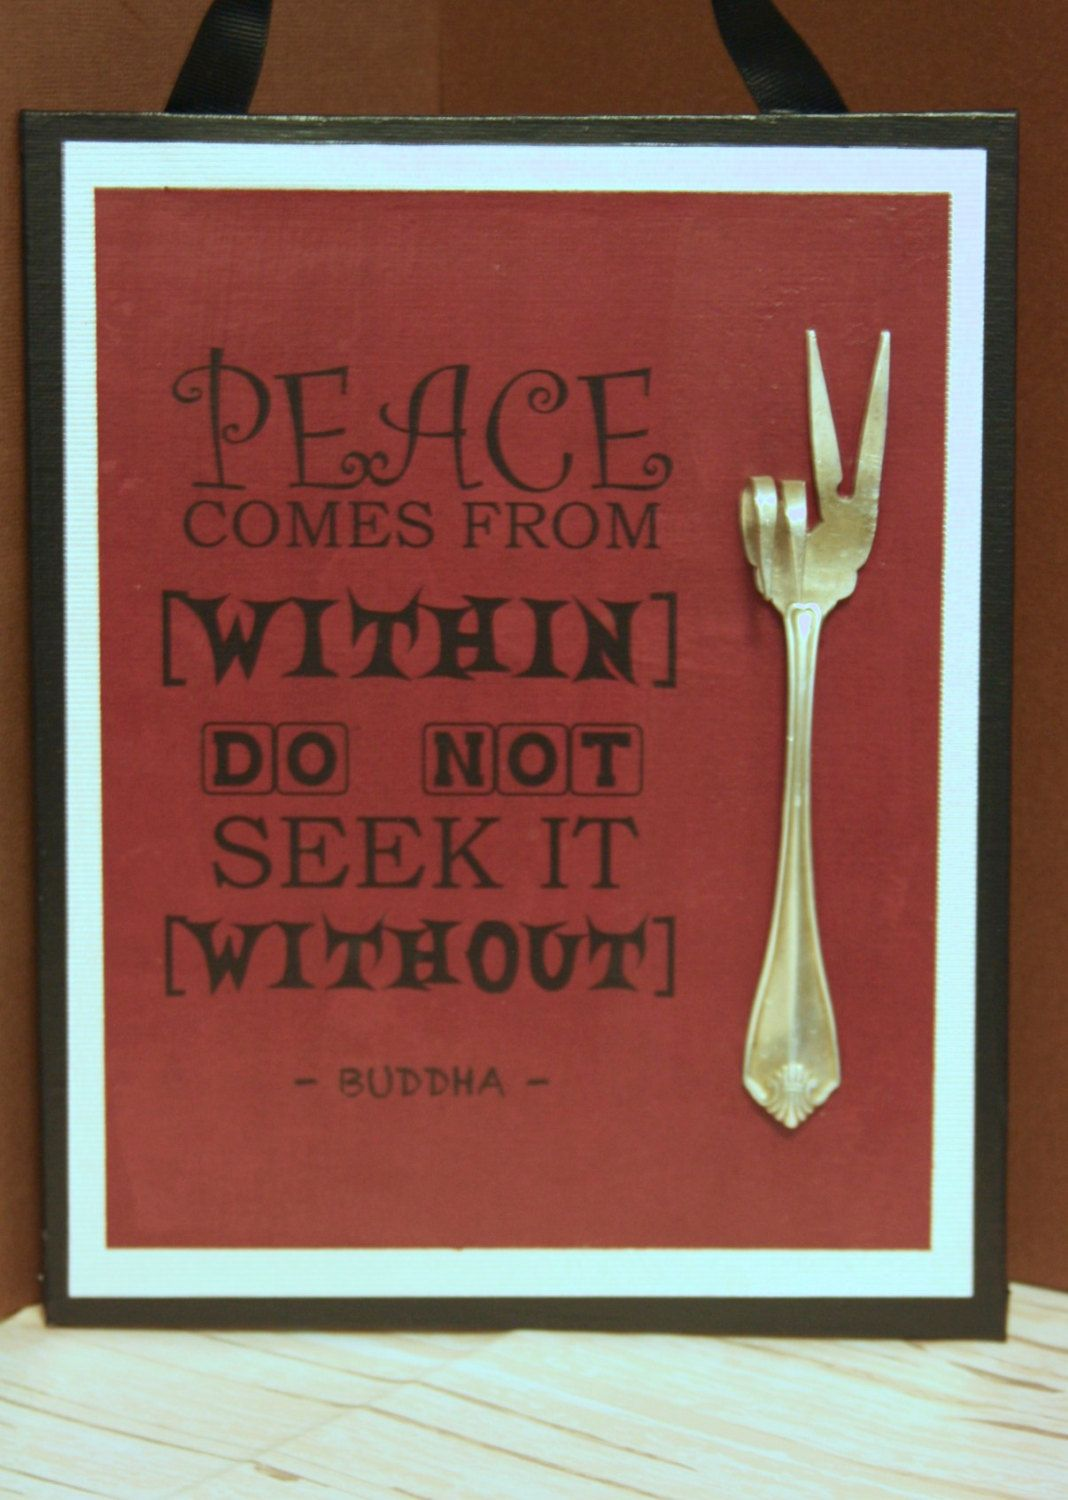 zen office decor. Zen Office Decor...Upcycled Silverware Art...Hippie Love...Peace SayingsUpcycled Peace Sign Decor Upcycle Gift Buddha Inspirational Saying